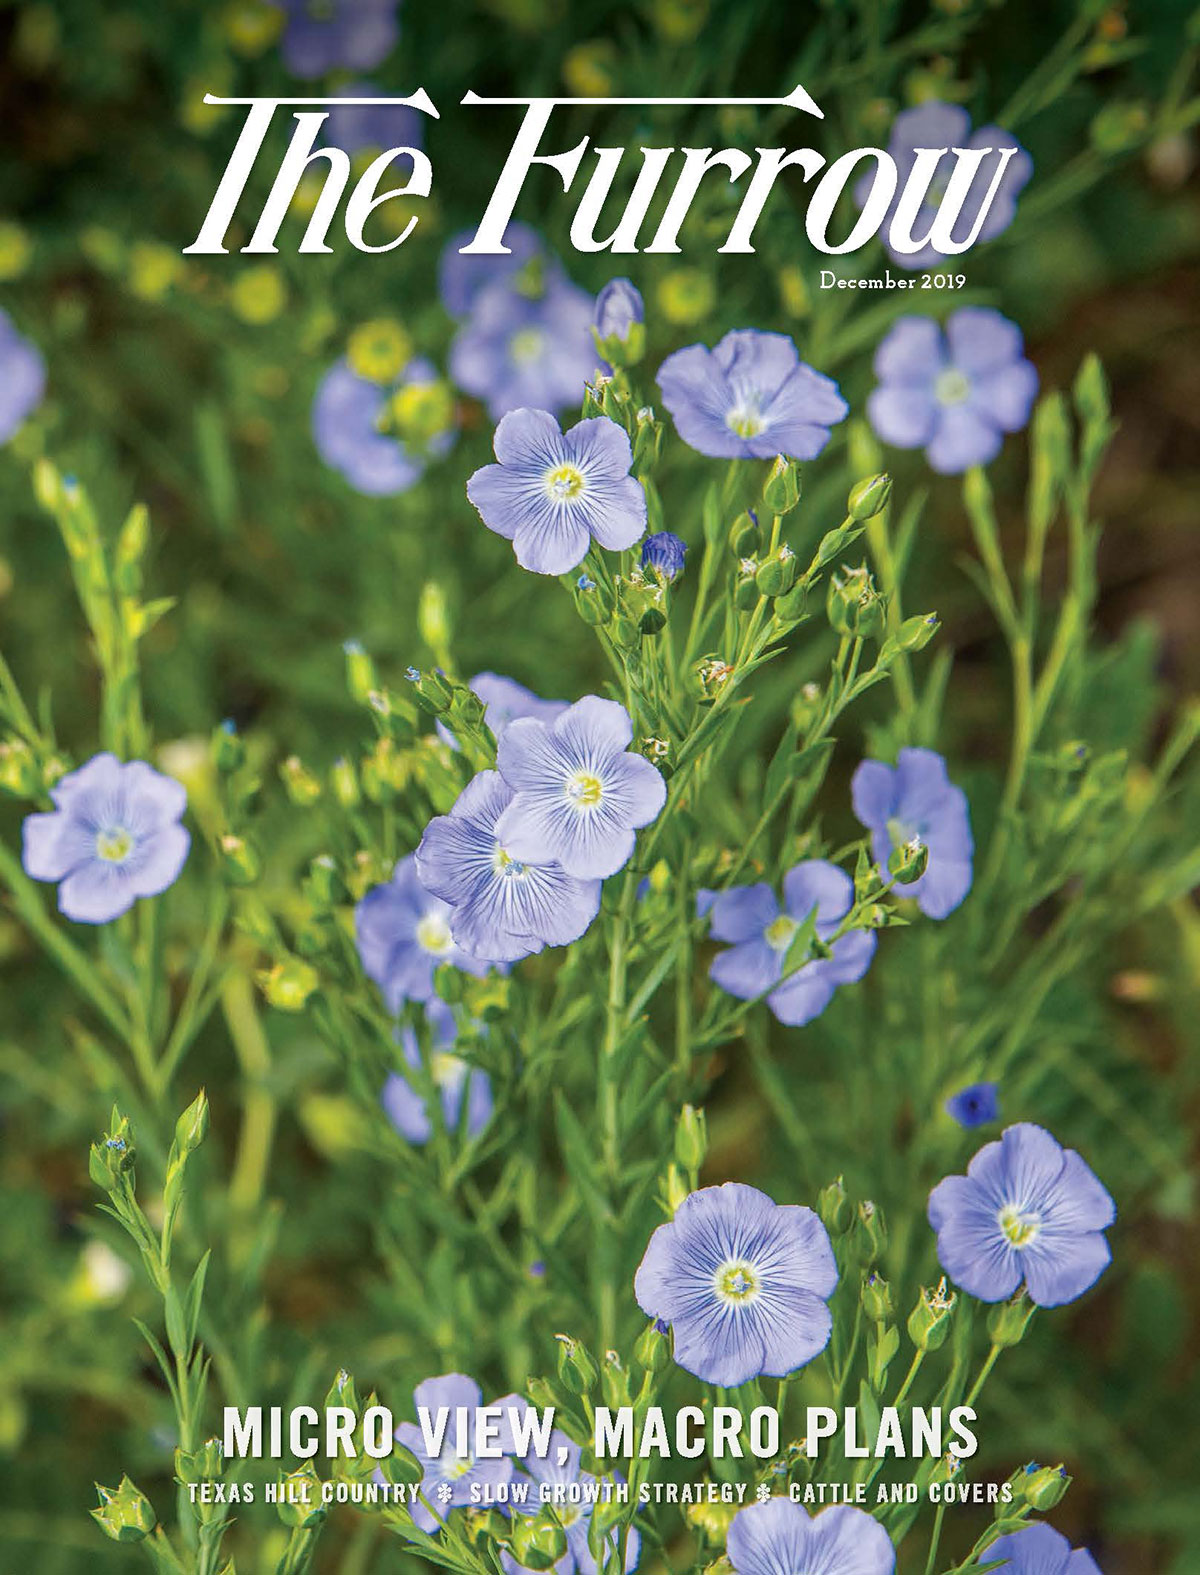 The Furrow - December 2019 Issue